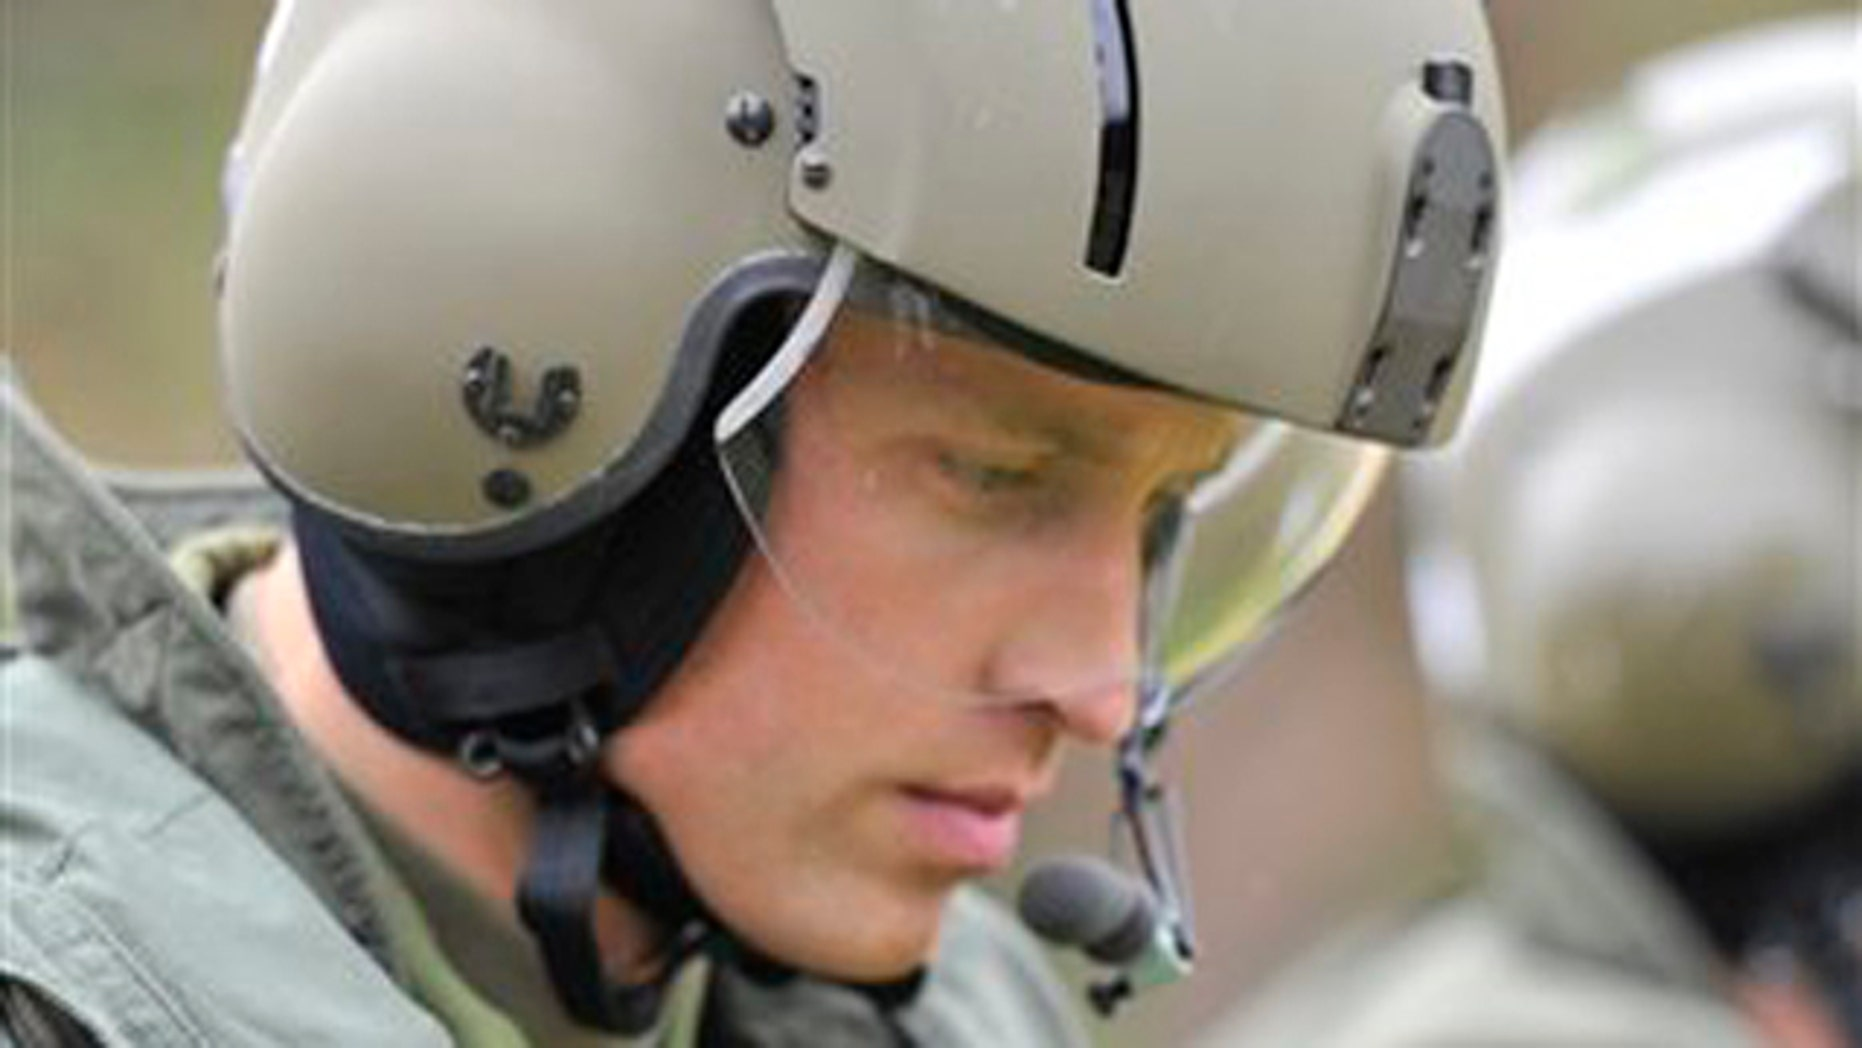 In this July 4, 2011 file photo, Britain's Prince William heads toward a Sea King helicopter for a training exercise, in Dalvay-by-the-Sea, Prince Edward Island, Canada. Prince William joined a frantic rescue mission Sunday after a cargo ship sank in the Irish Sea, leaving several crew members still missing.